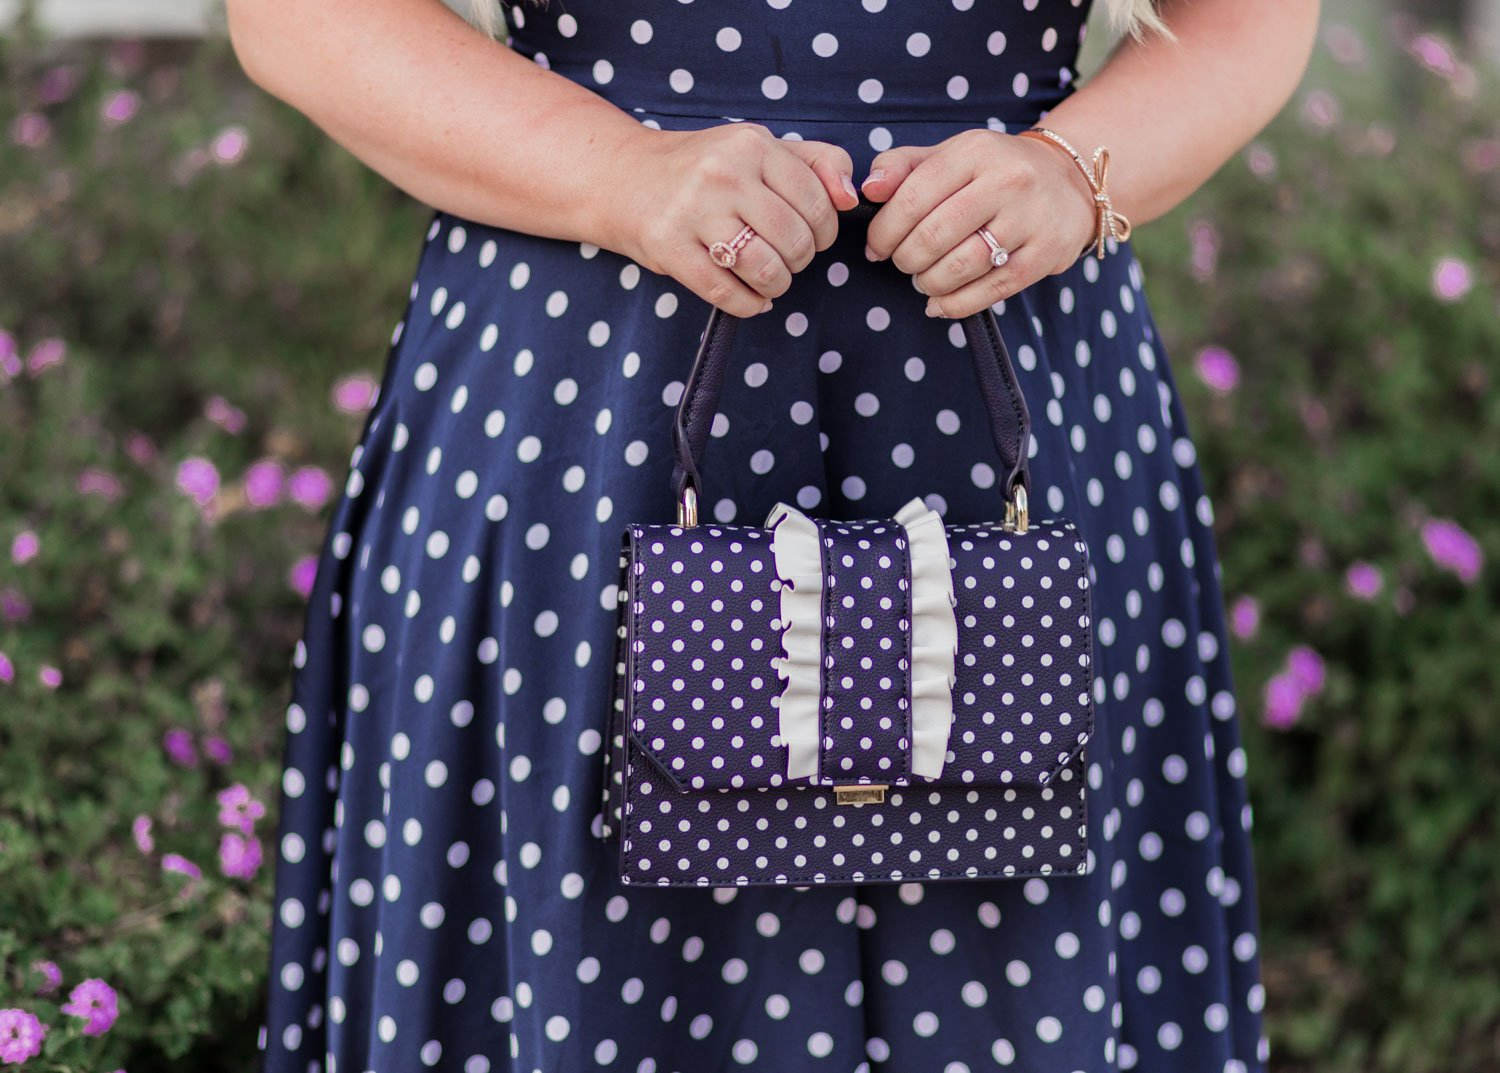 Elizabeth Hugen of Lizzie in Lace shares her feminine vintage style outfit with a polka dot Review Australia handbag!